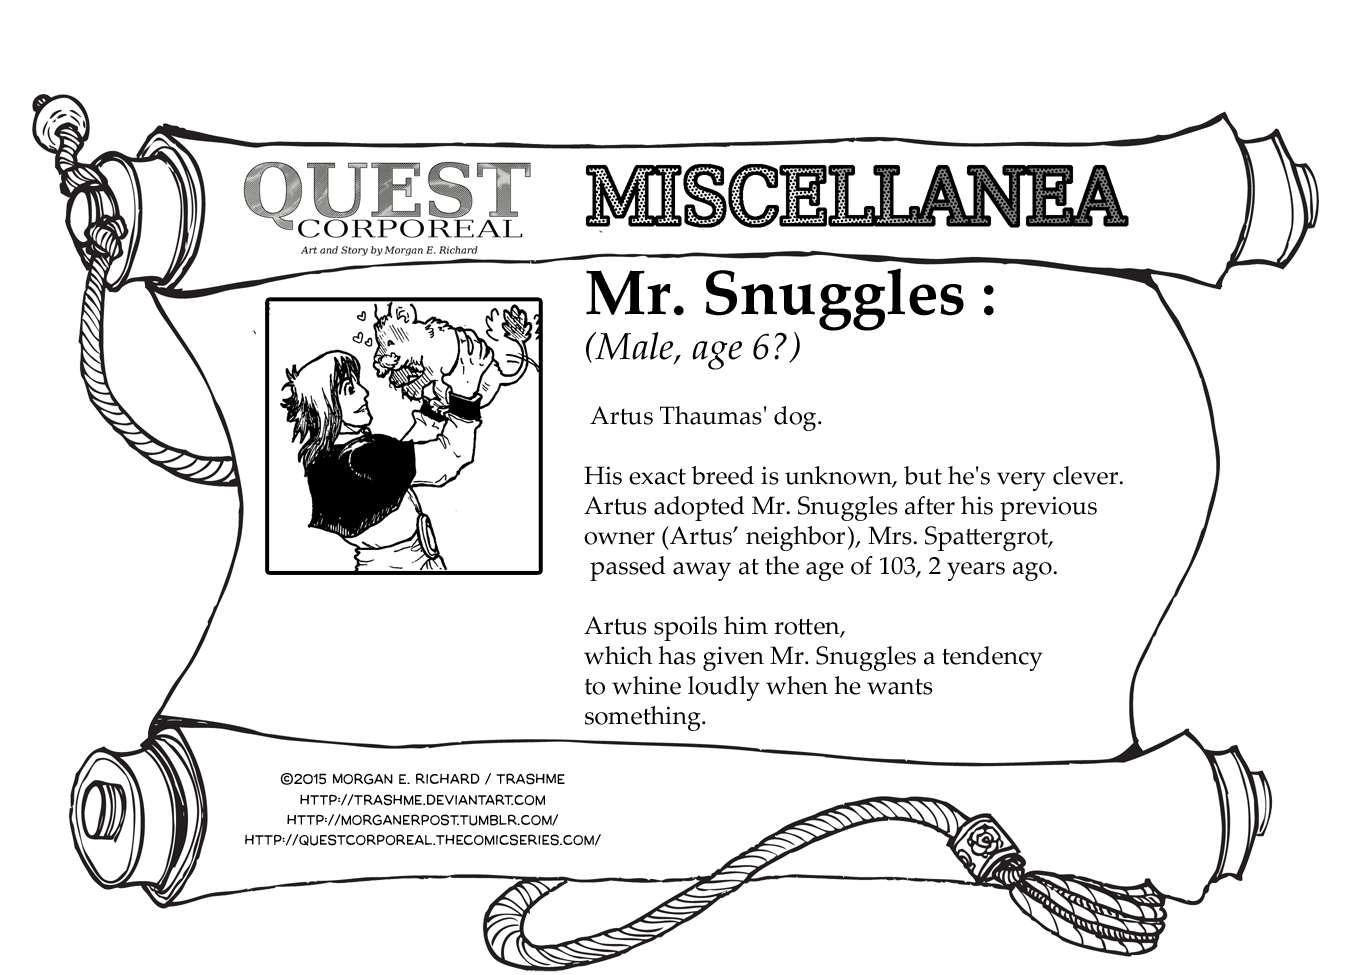 Miscellanea Corporeal: Mr. Snuggles